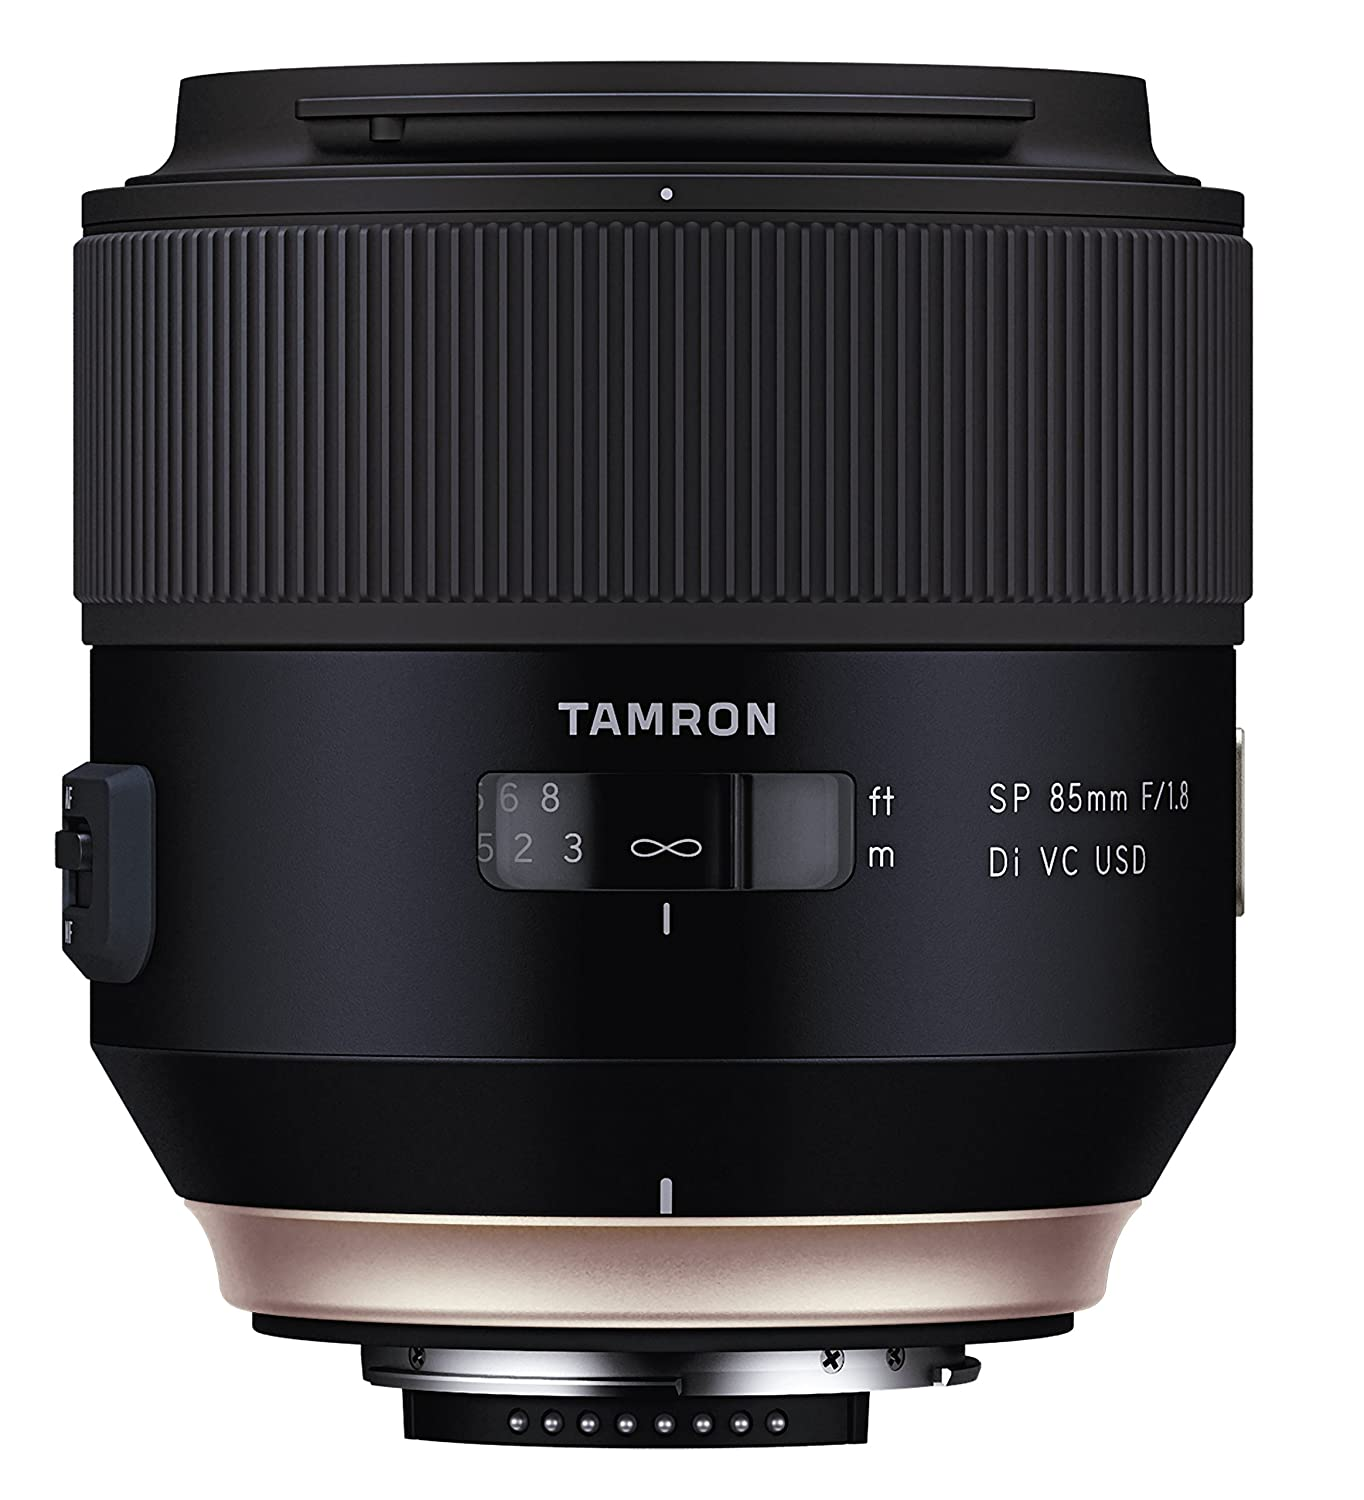 Tamron SP 85mm F/1,8 Di VC USD Objektiv für Canon: Amazon.de: Kamera